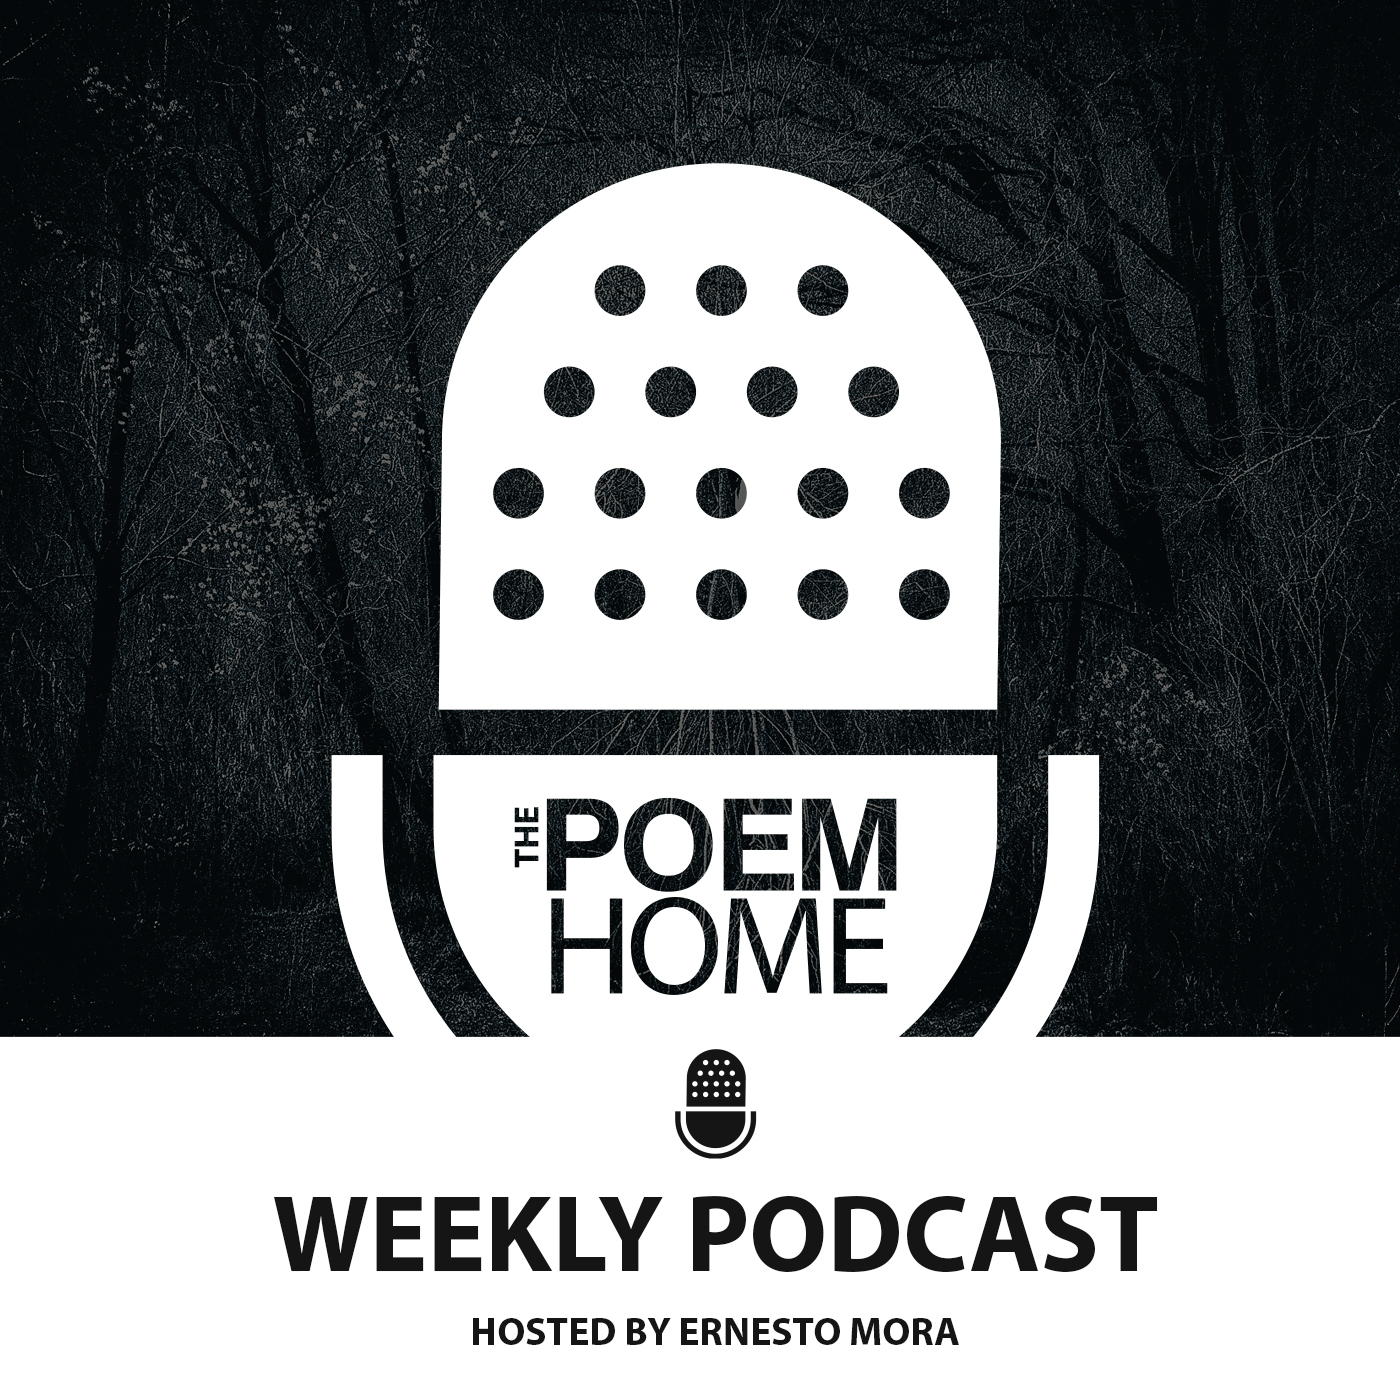 ThePOEMHOME Weekly Podcast